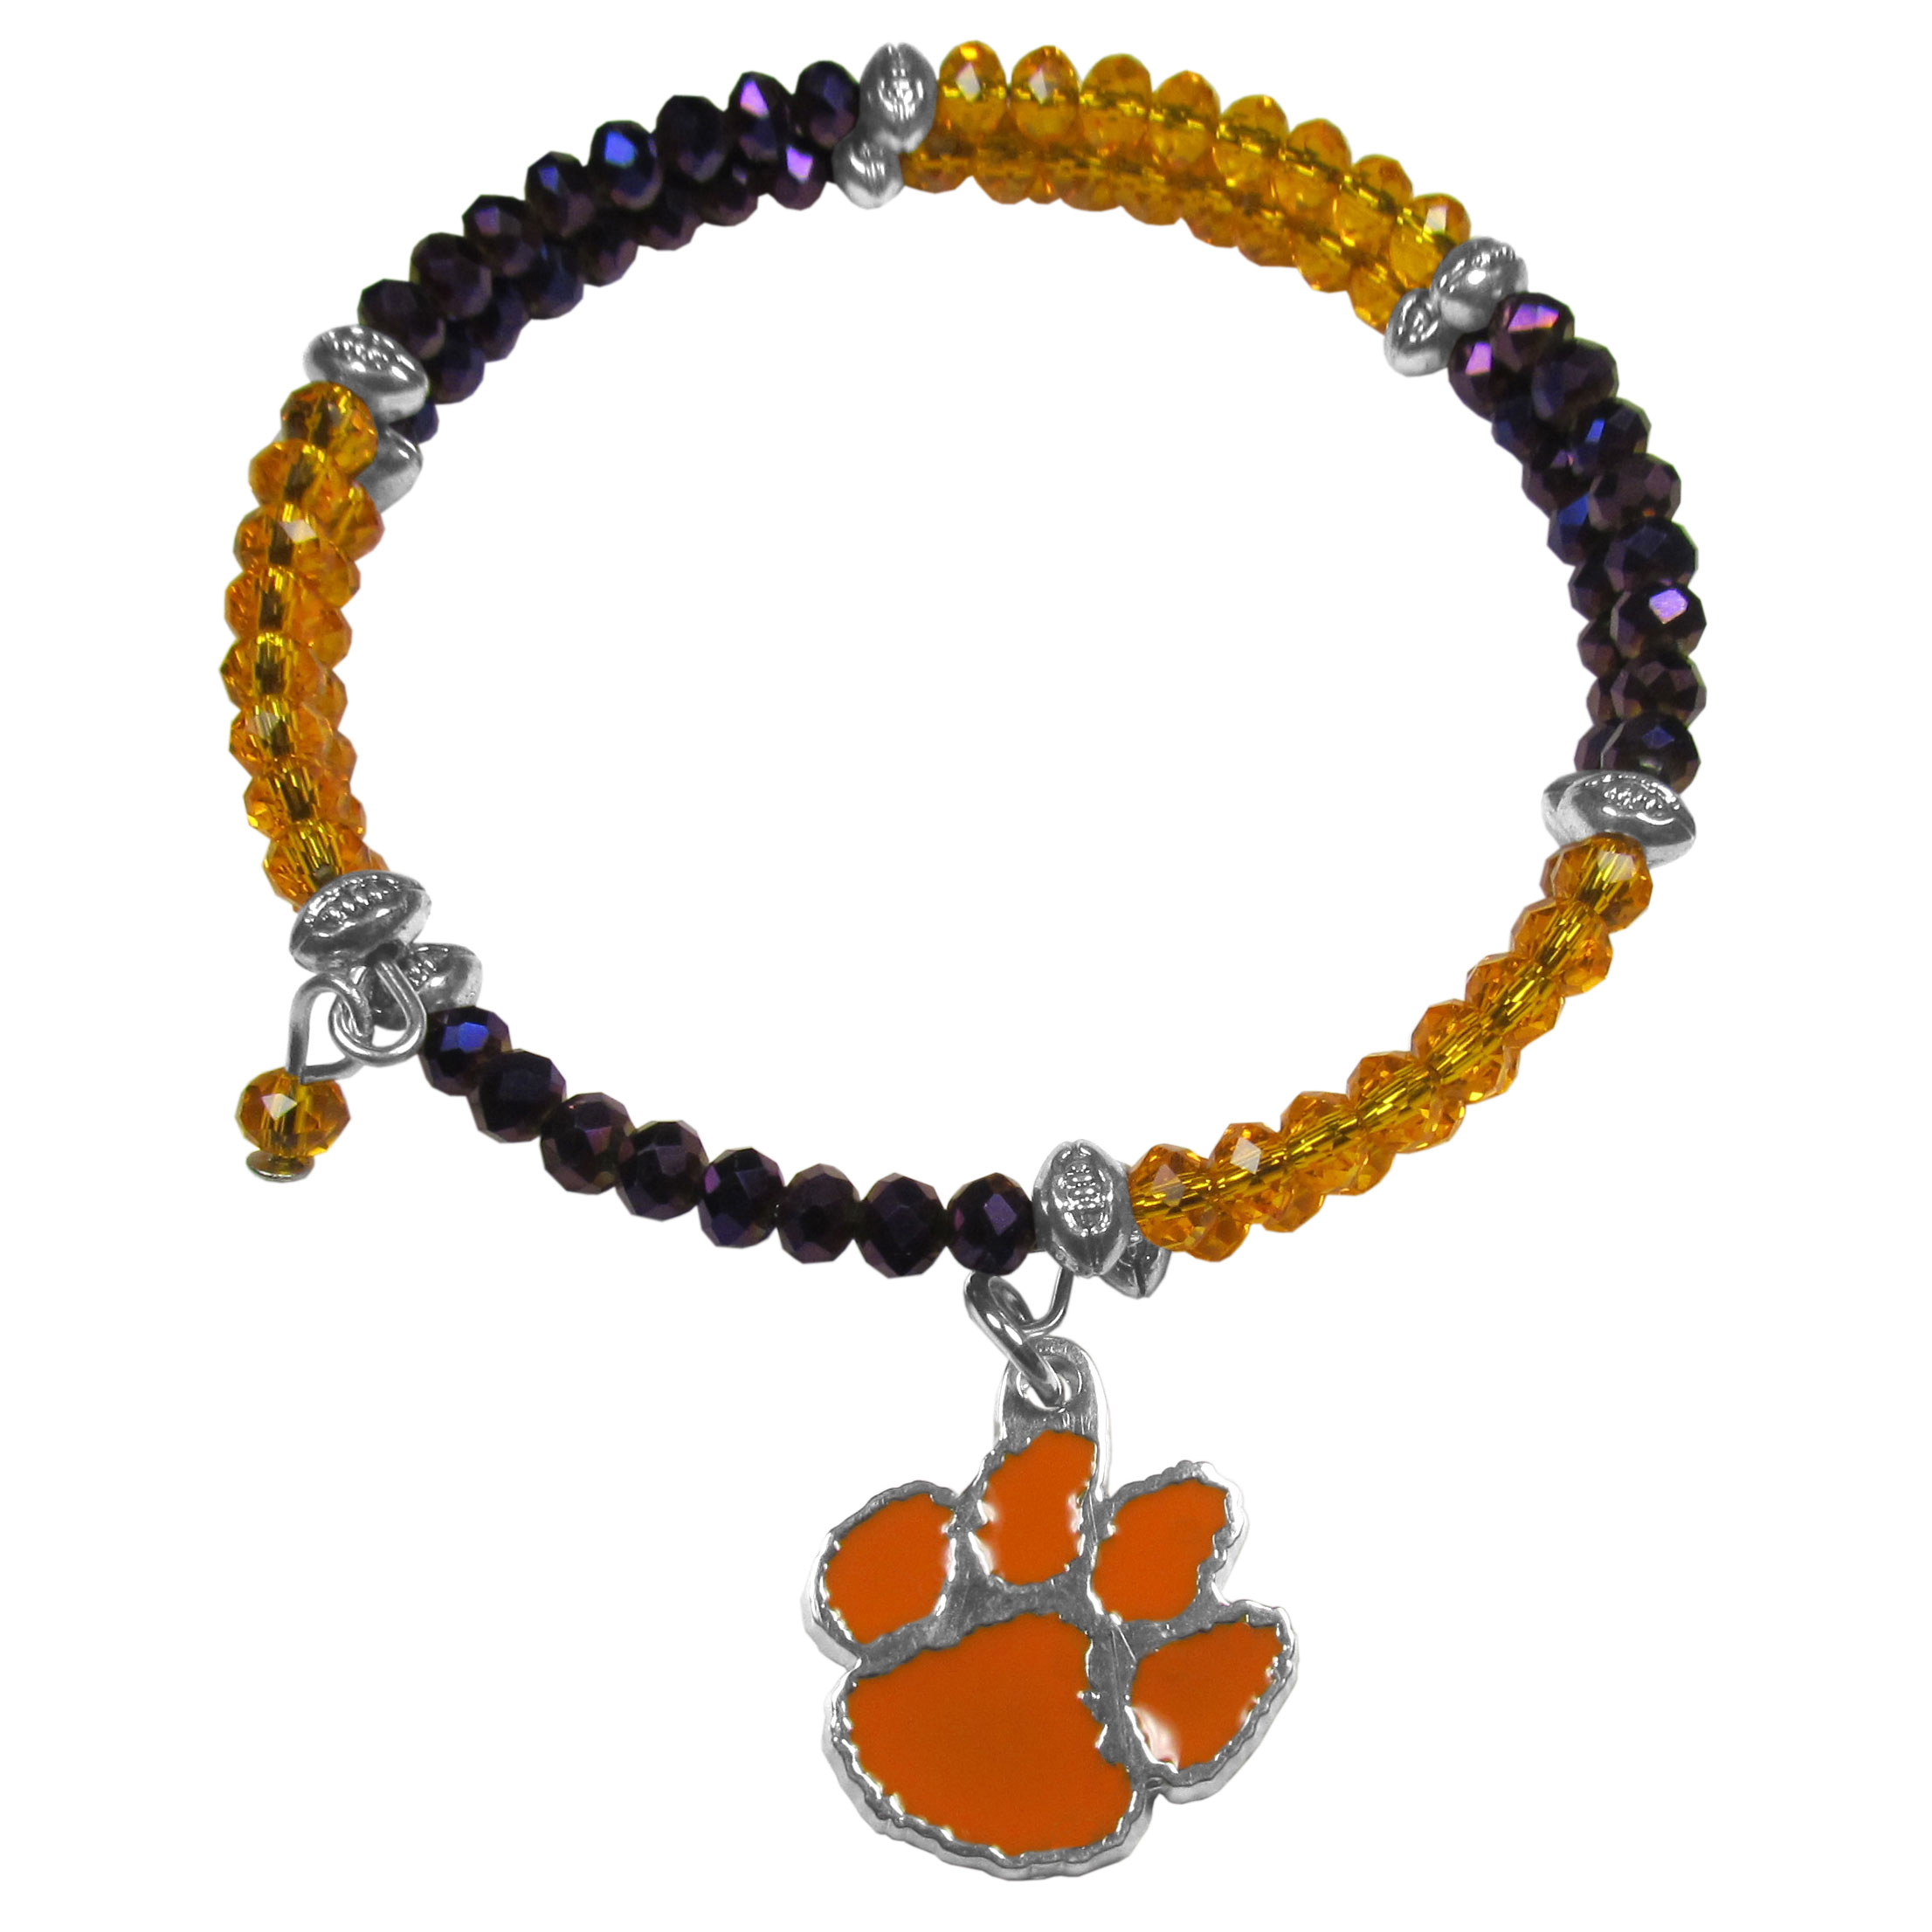 Clemson Tigers Crystal Memory Wire Bracelet - Our Clemson Tigers memory wire crystal bracelet is trendy way to show off your love of the game. The double wrap bracelet is completely covered in 4 mm crystals that are broken up with adorable football beads creating a designer look with a sporty twist. The bracelet features a fully cast, metal team charm that has expertly enameled team colors. This fashion jewelry piece is a must-have for the die-hard fan that chic look that can dress up any outfit.